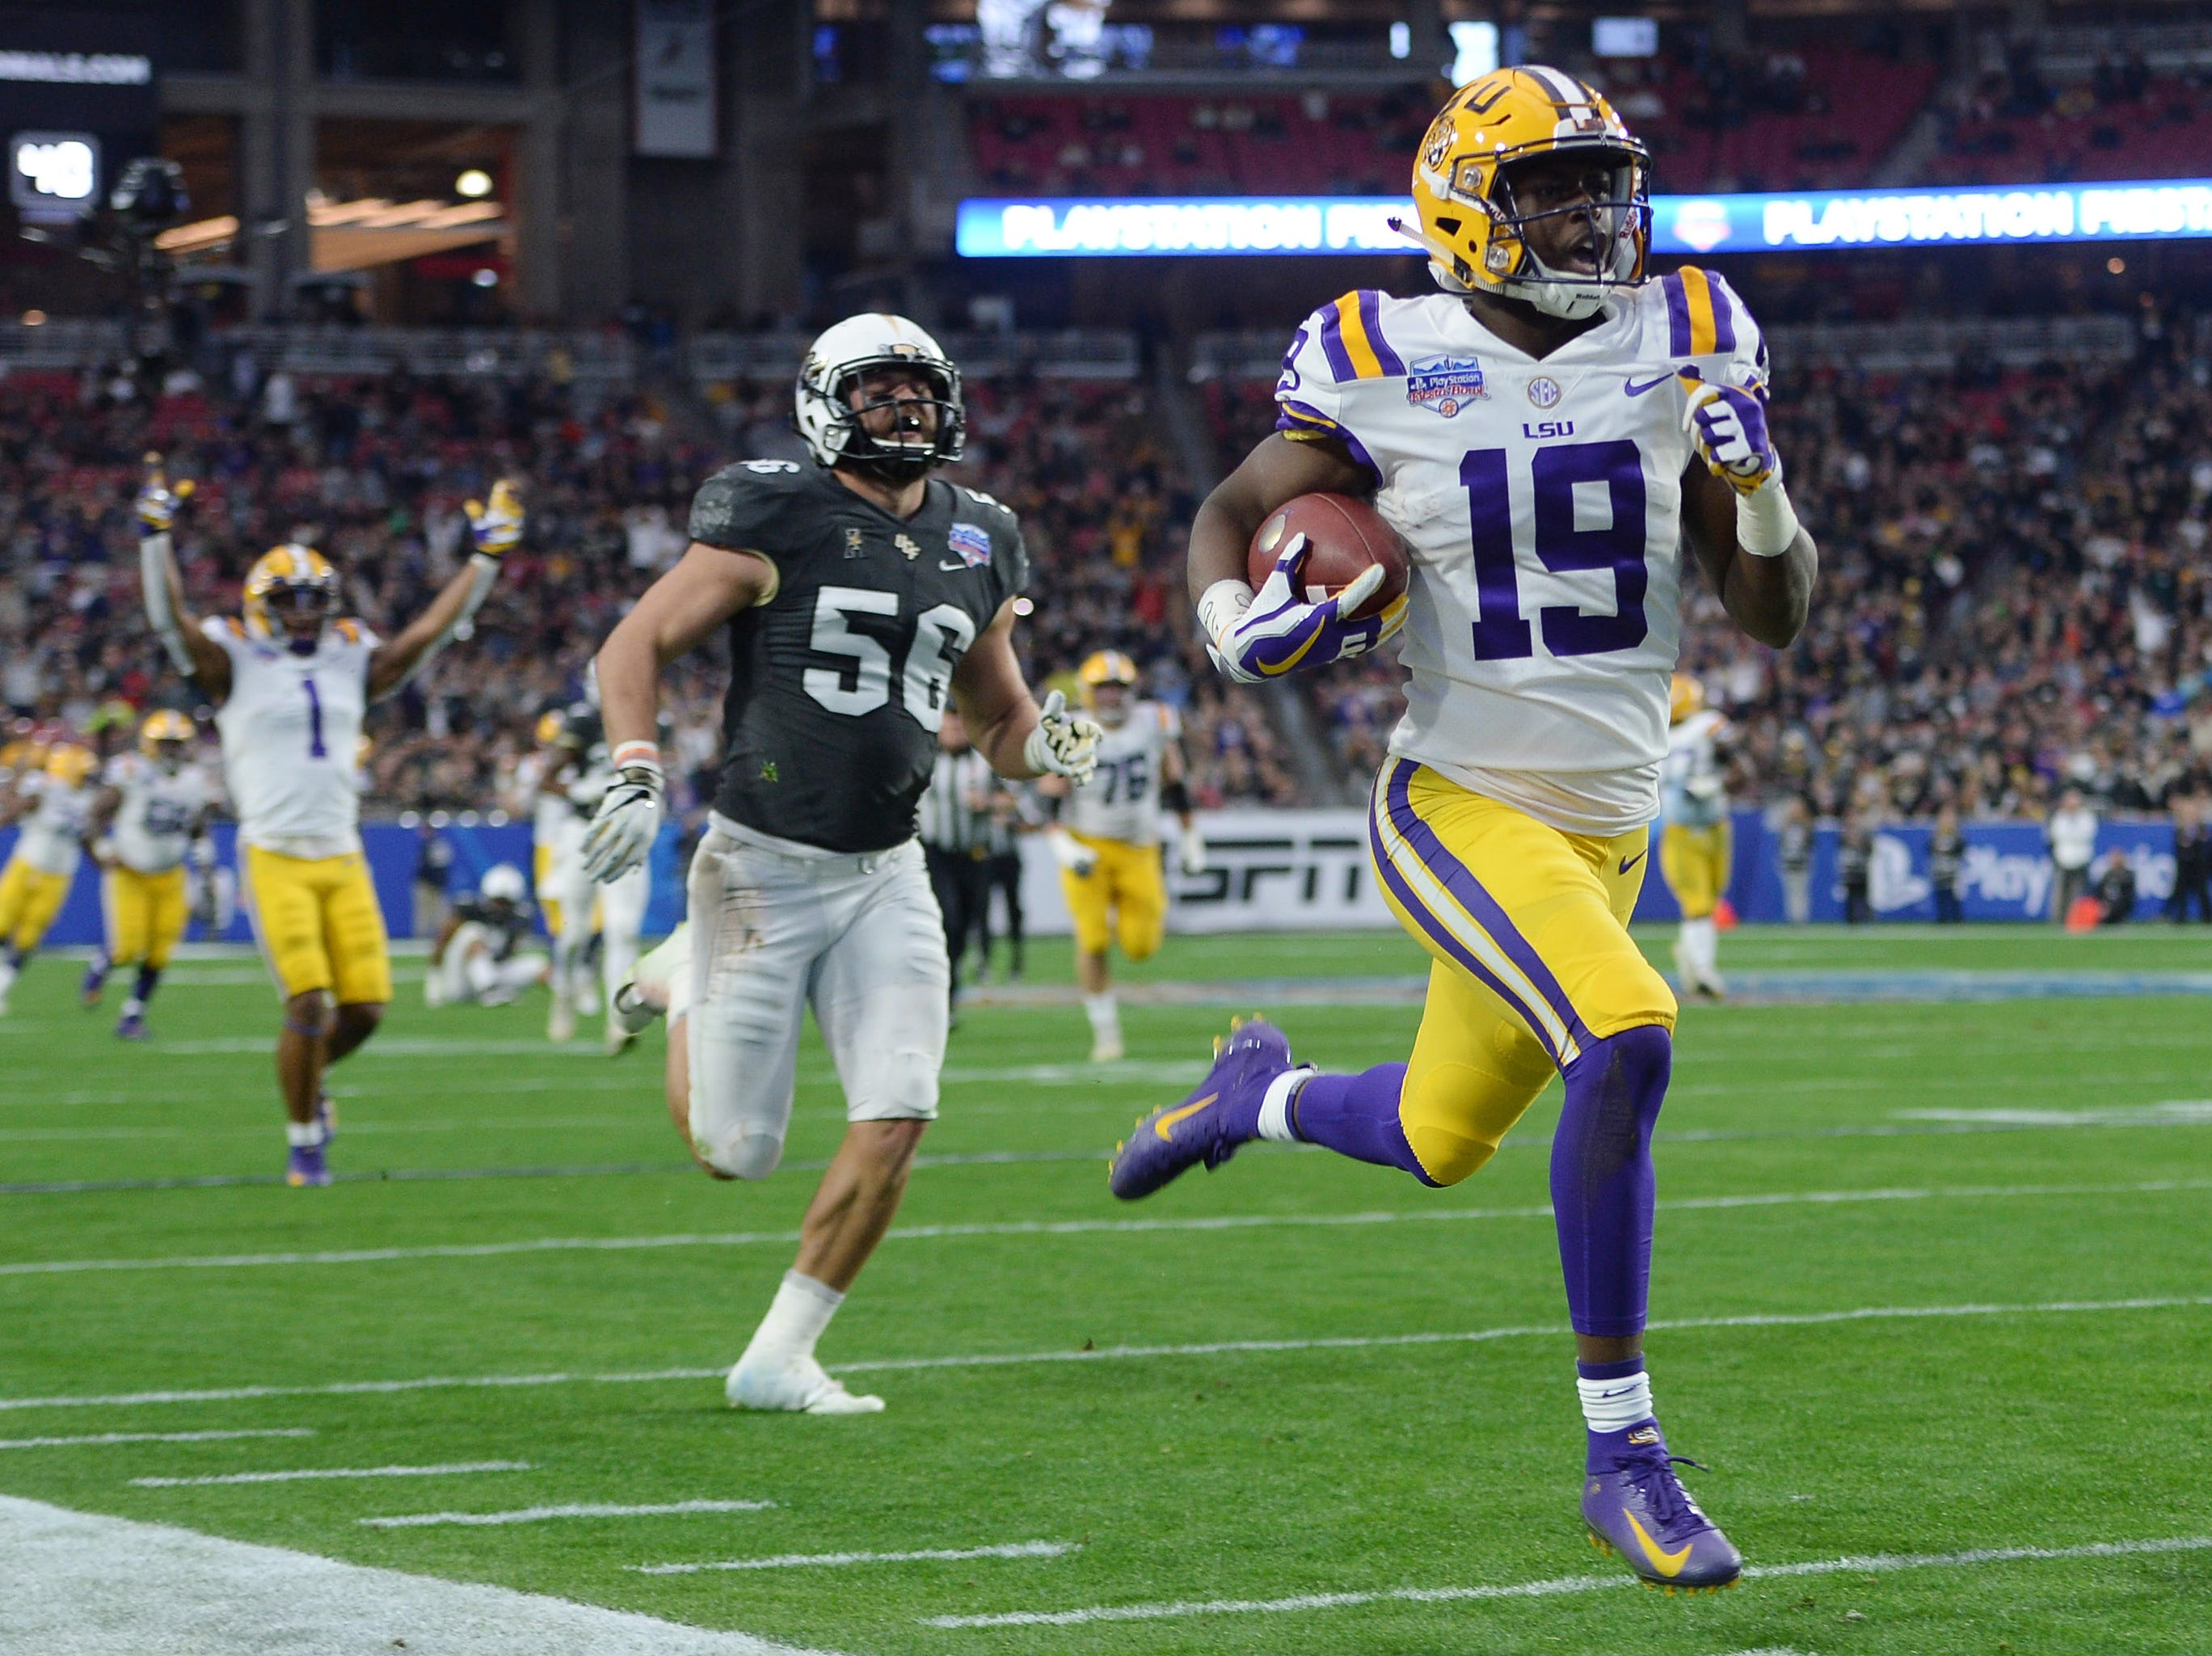 LSU Tigers wide receiver Derrick Dillon (19) scores a touchdown against the UCF Knights during the first half of the Fiesta Bowl.